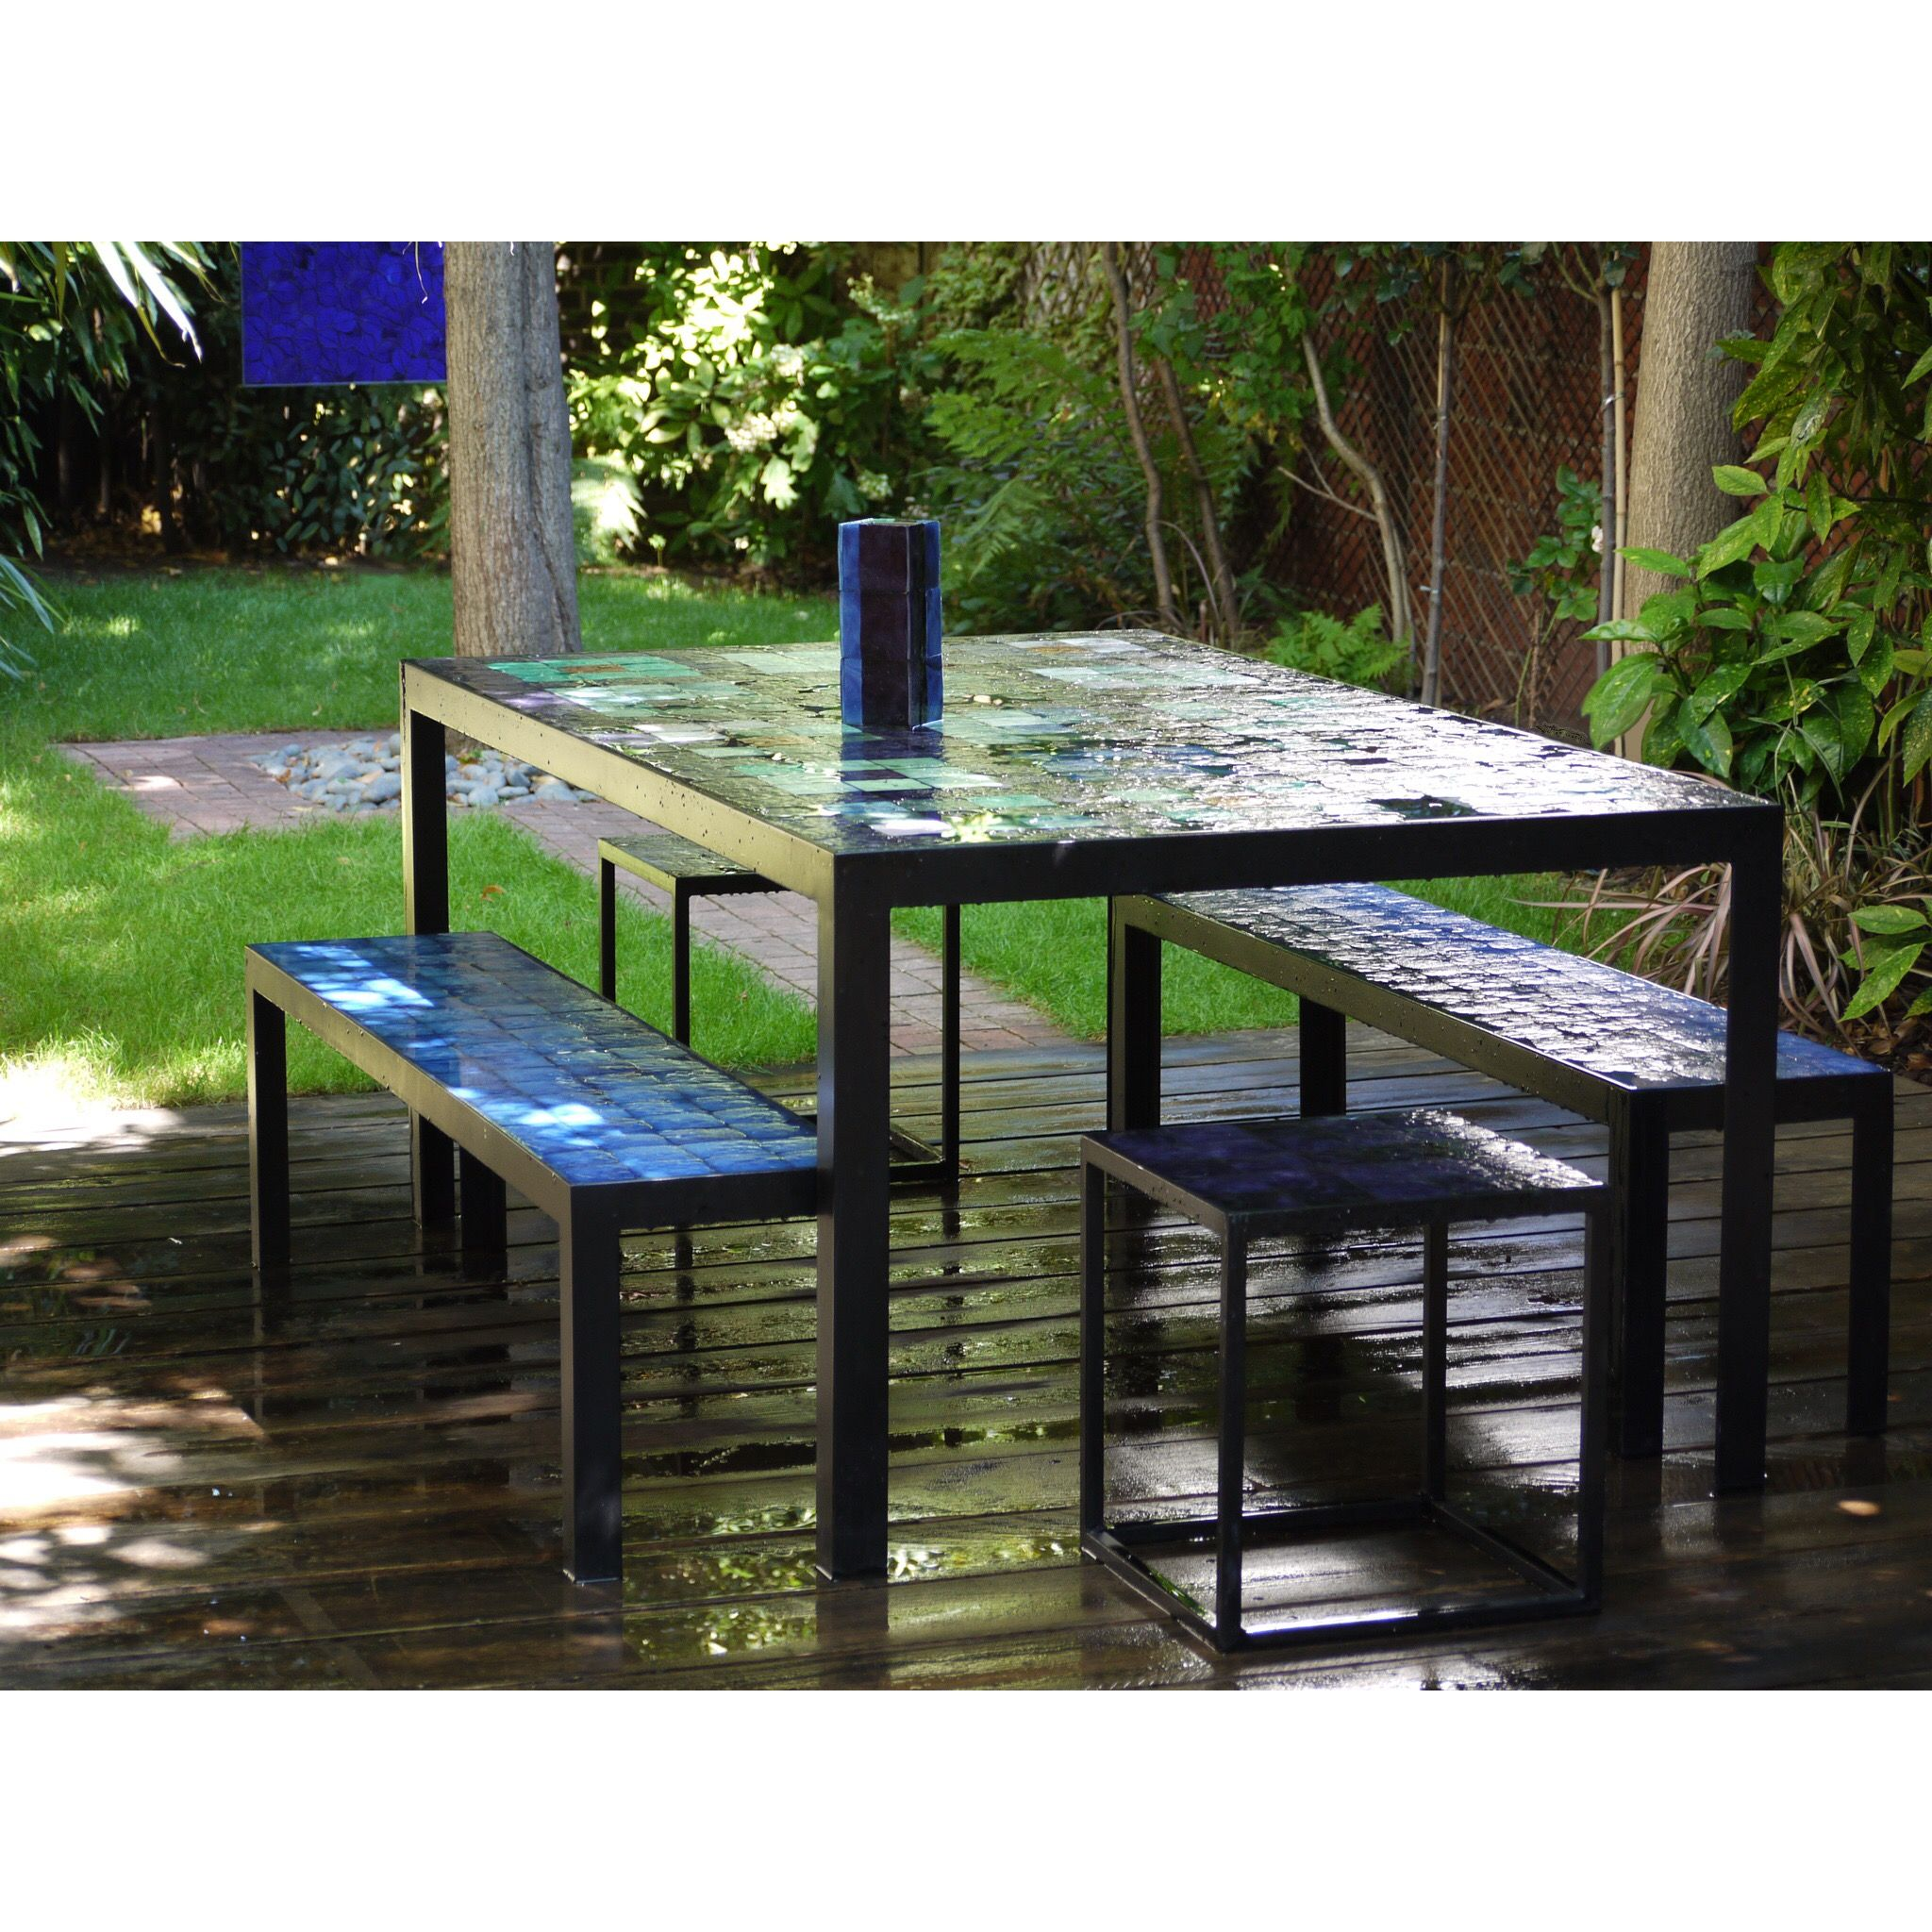 Art Et Jardin Unique Blue Patchwork Table In Situ Single Work Of Art Handmade Of 56 Luxe Art Et Jardin